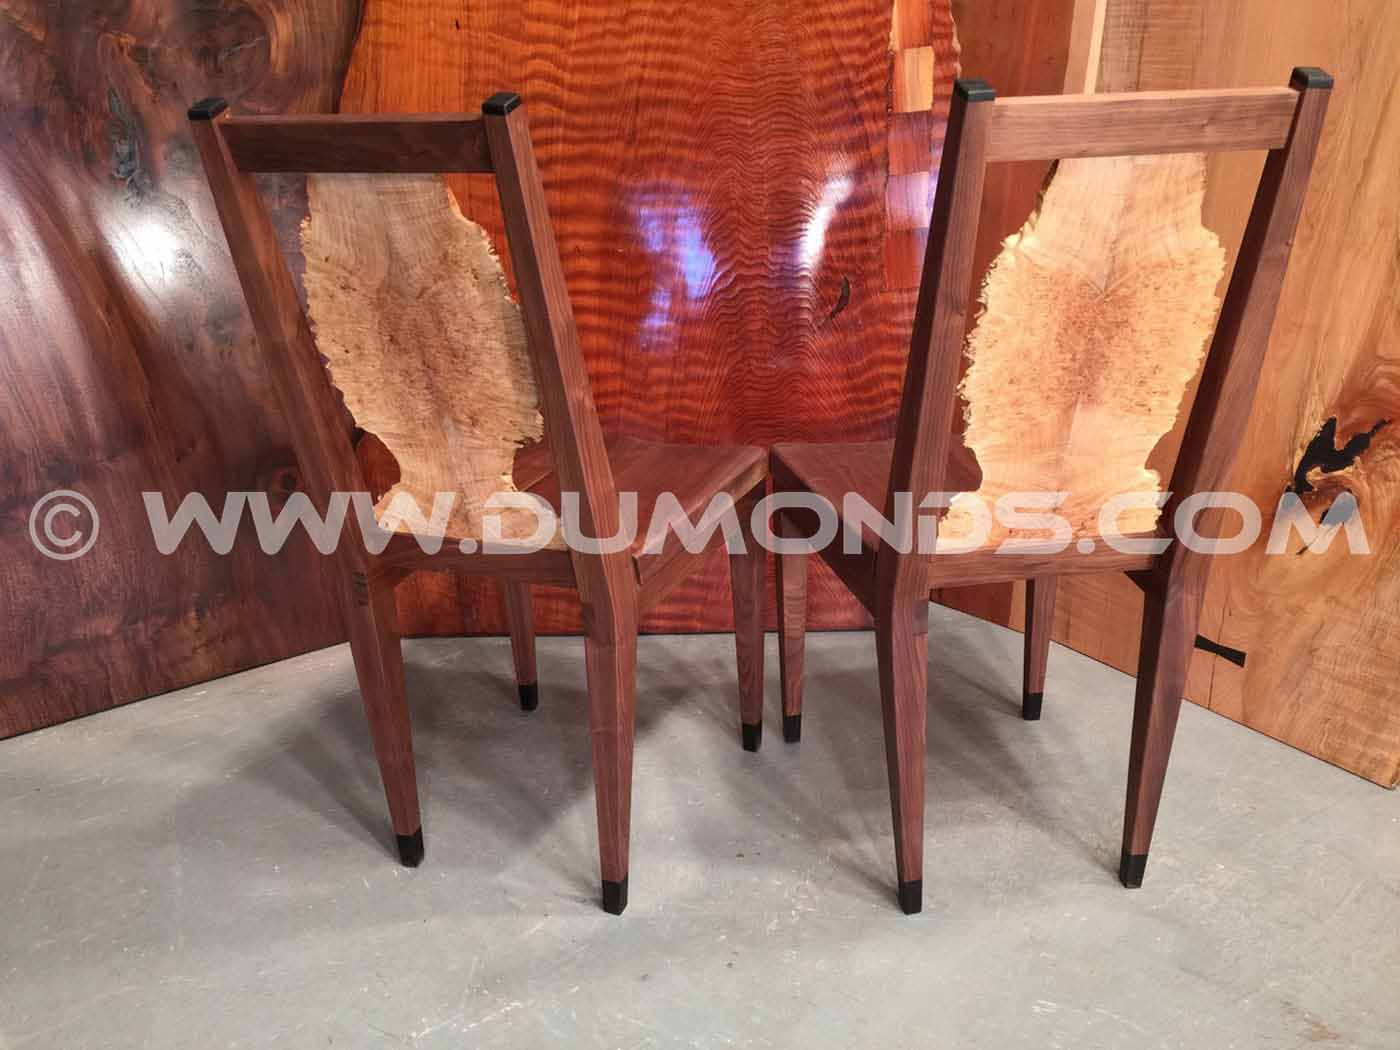 Terrific Custom Wood Dining Chairs Dumonds Custom Furniture Lamtechconsult Wood Chair Design Ideas Lamtechconsultcom